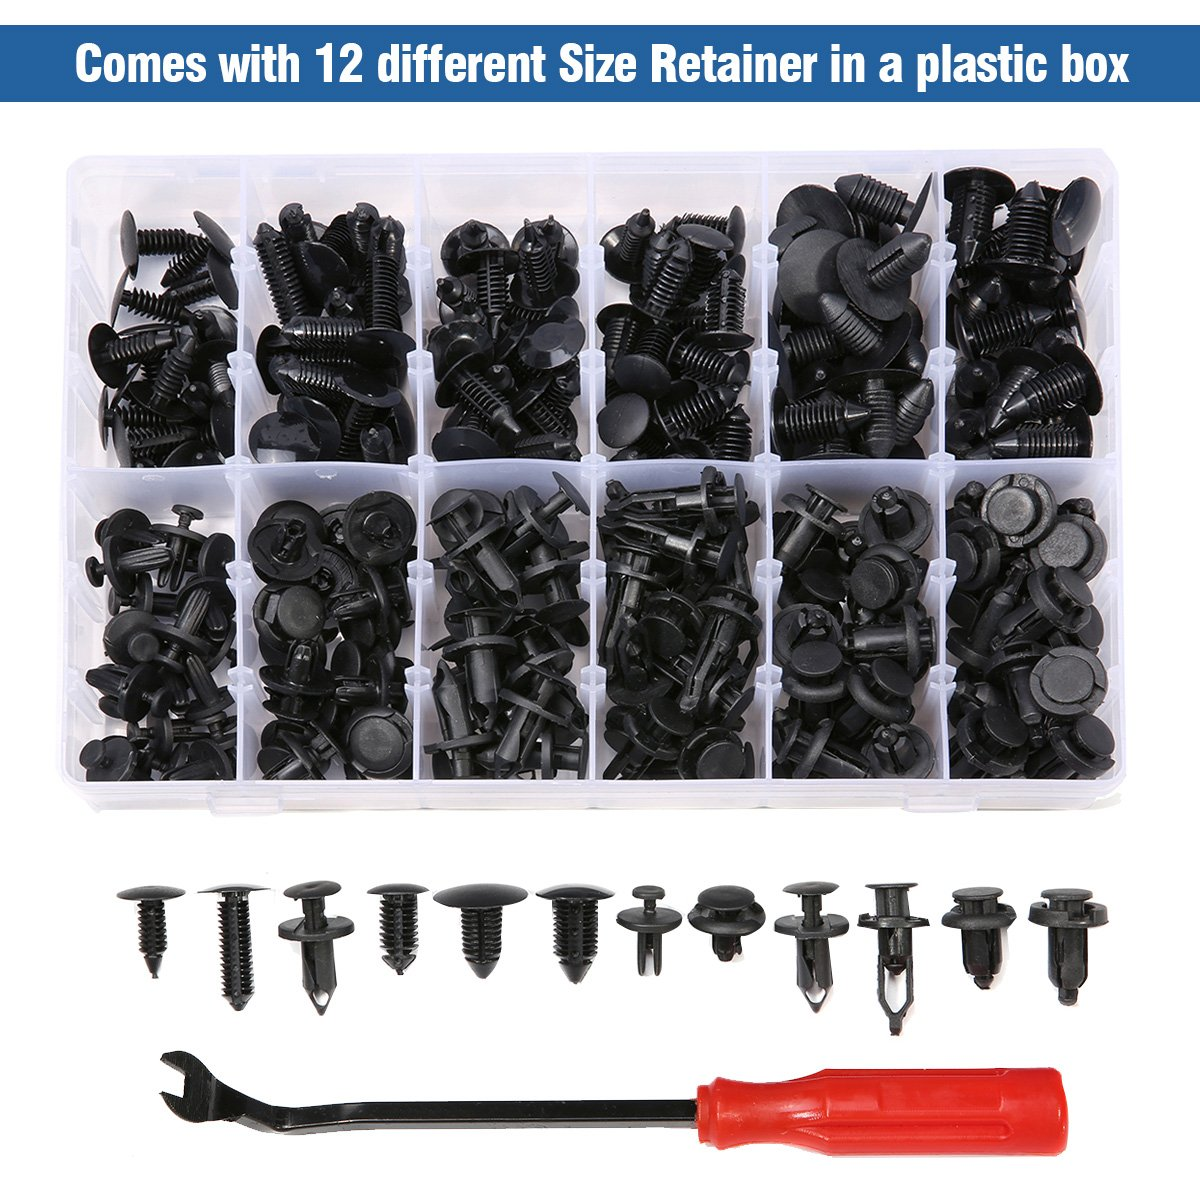 MATCC 240 Pcs Push Retainer Kit Rivet Clips Assortment Set